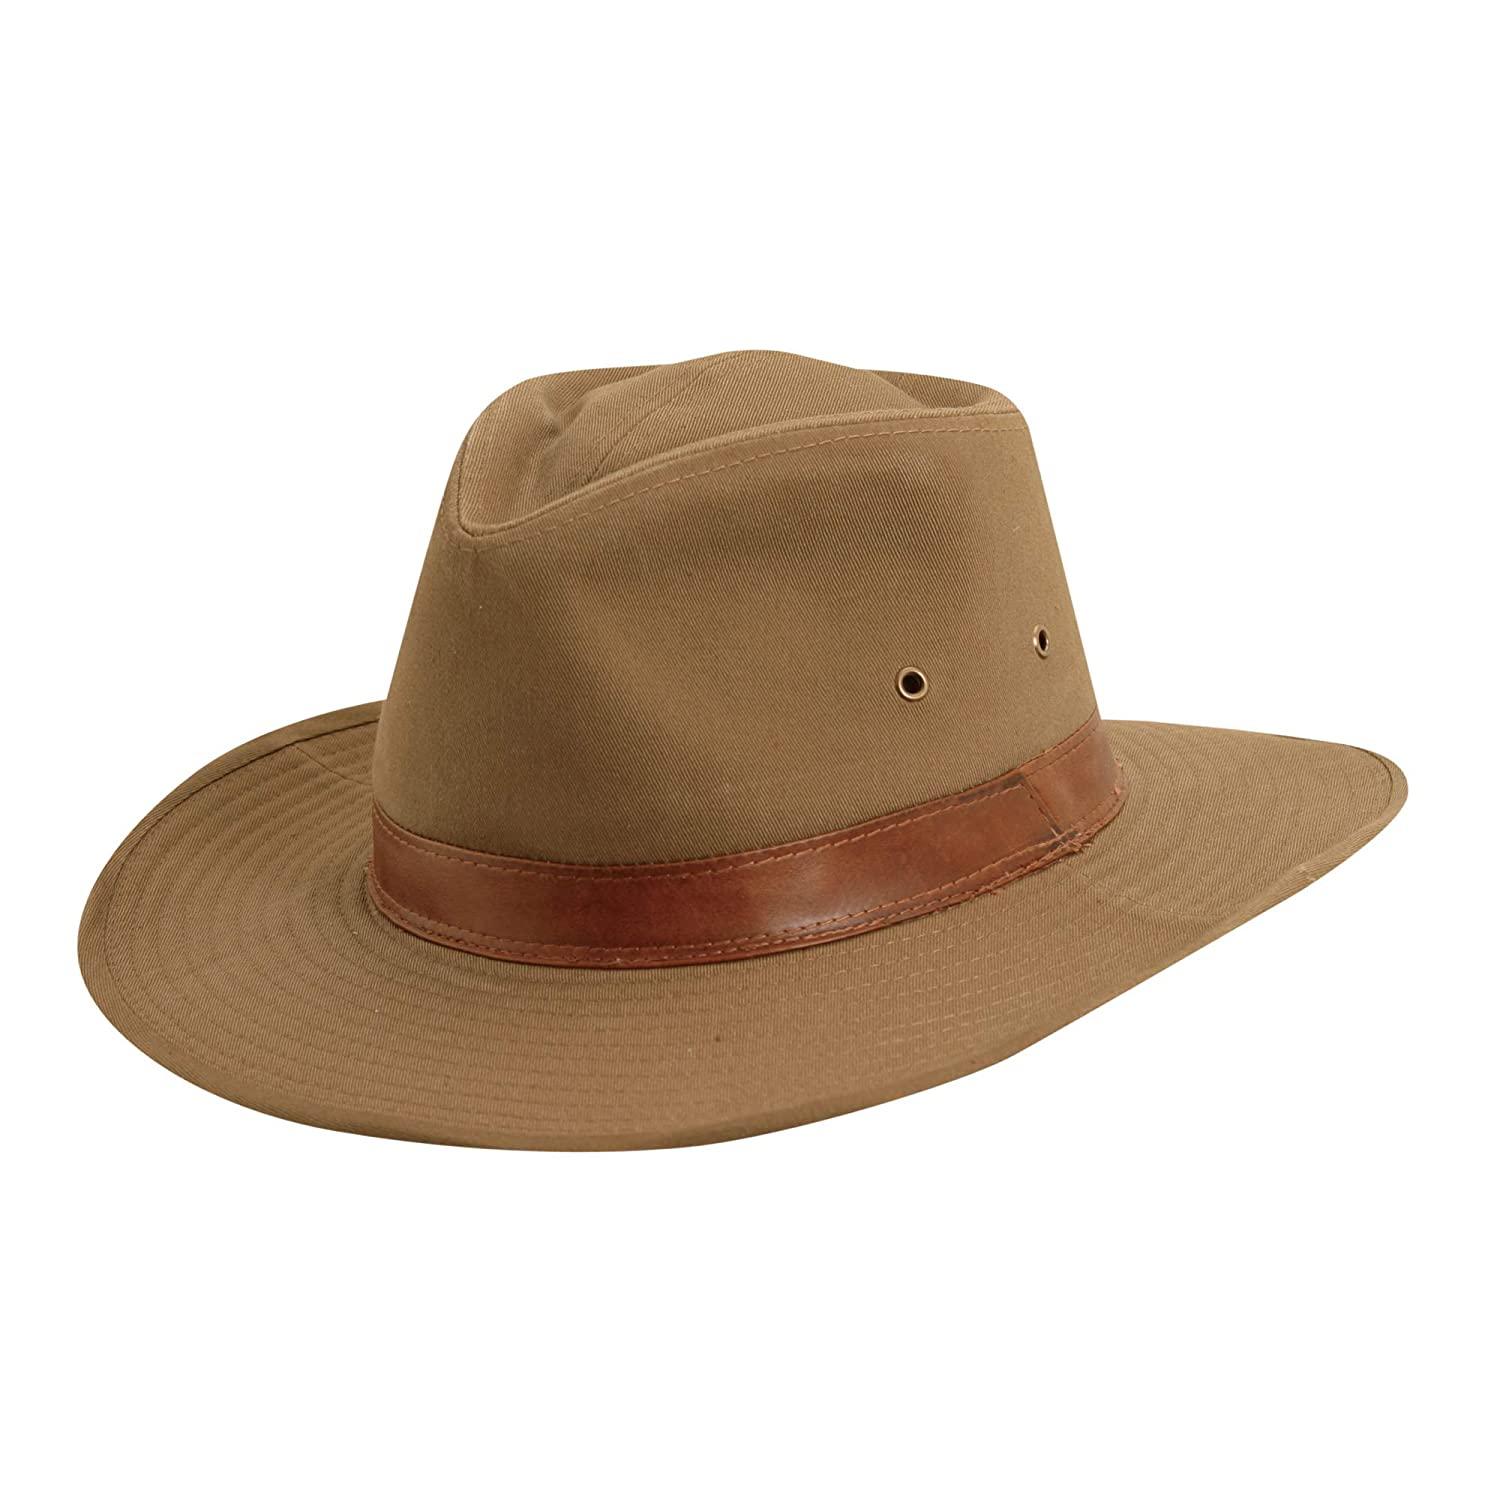 442a6e1274d Dorfman Pacific Men s Twill Outback Hat at Amazon Men s Clothing store